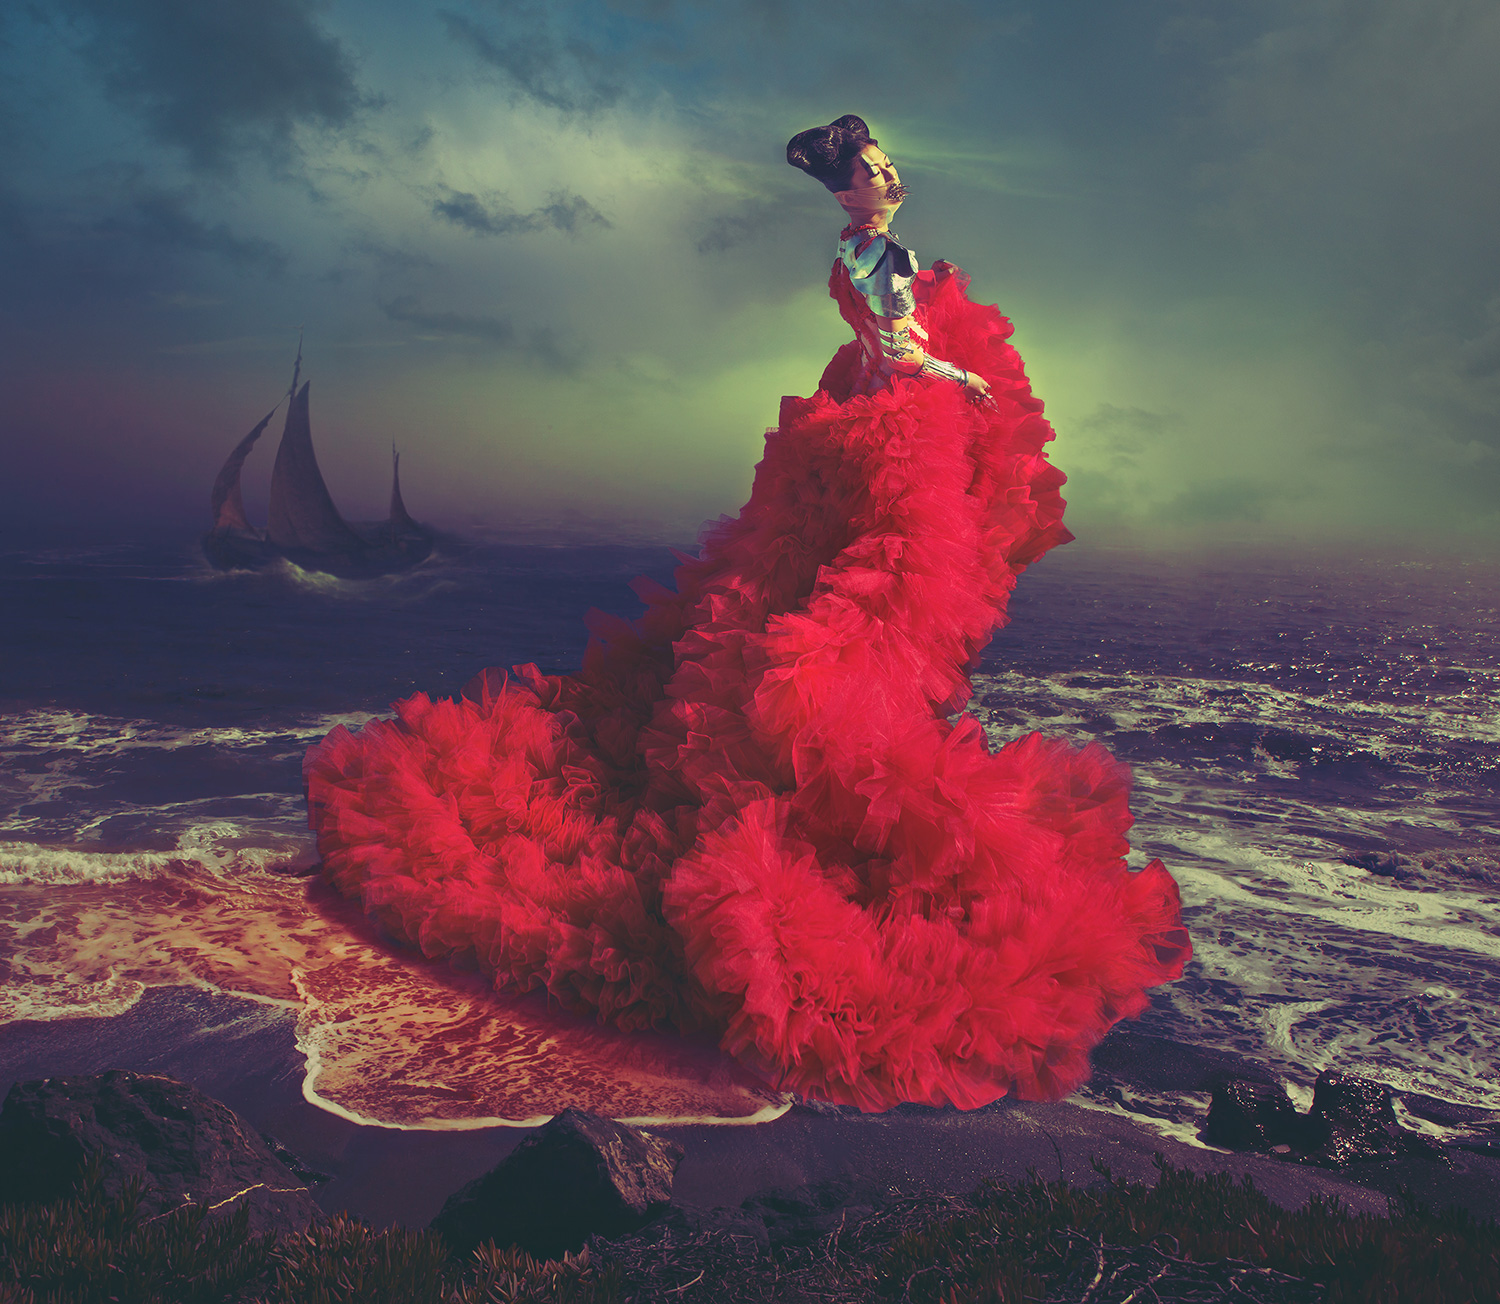 SCARLET SONG (2013)  Features boat from 'Ships in a Fresh Breeze' by Hermanus Koekkoek (1778-1851).  Model: Connie Roudier, Wunder Management / Styling & dress by Leonid Gurevich / Hair: Jeffrey Fetzer / Makeup: Heiddis Ros Reynisdottir / Shoulder piece: Nikita Karizma / Muzzle: Satori Breonn / Bracelets: Clara Kasavina / Metal bracelet: Gasoline Glamour / Rings: Shiang, Clara Kasavina & Gasoline Glamour